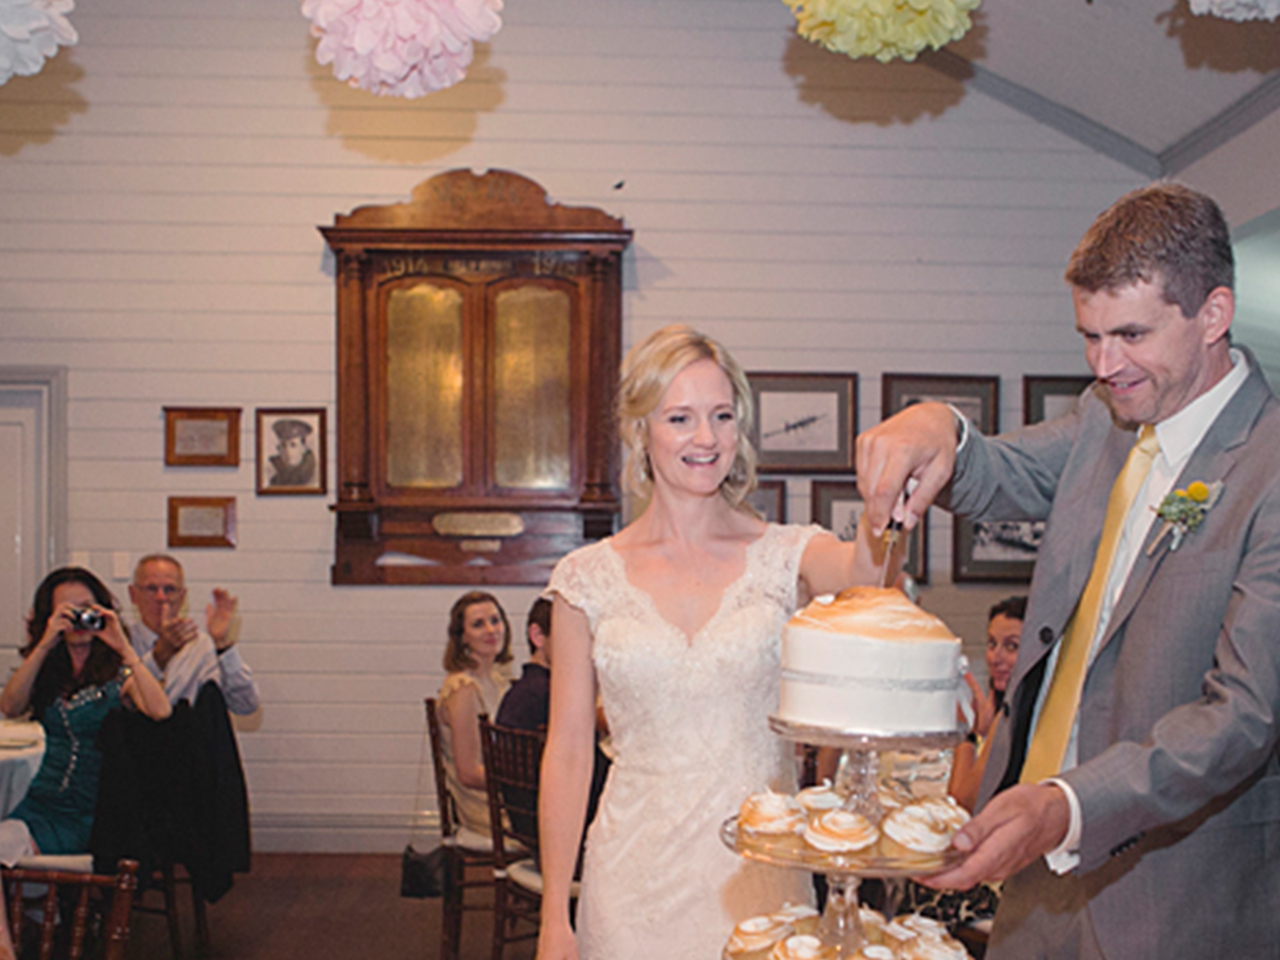 Groom And Bride Slicing Their Wedding Cake With Guests Behind Them